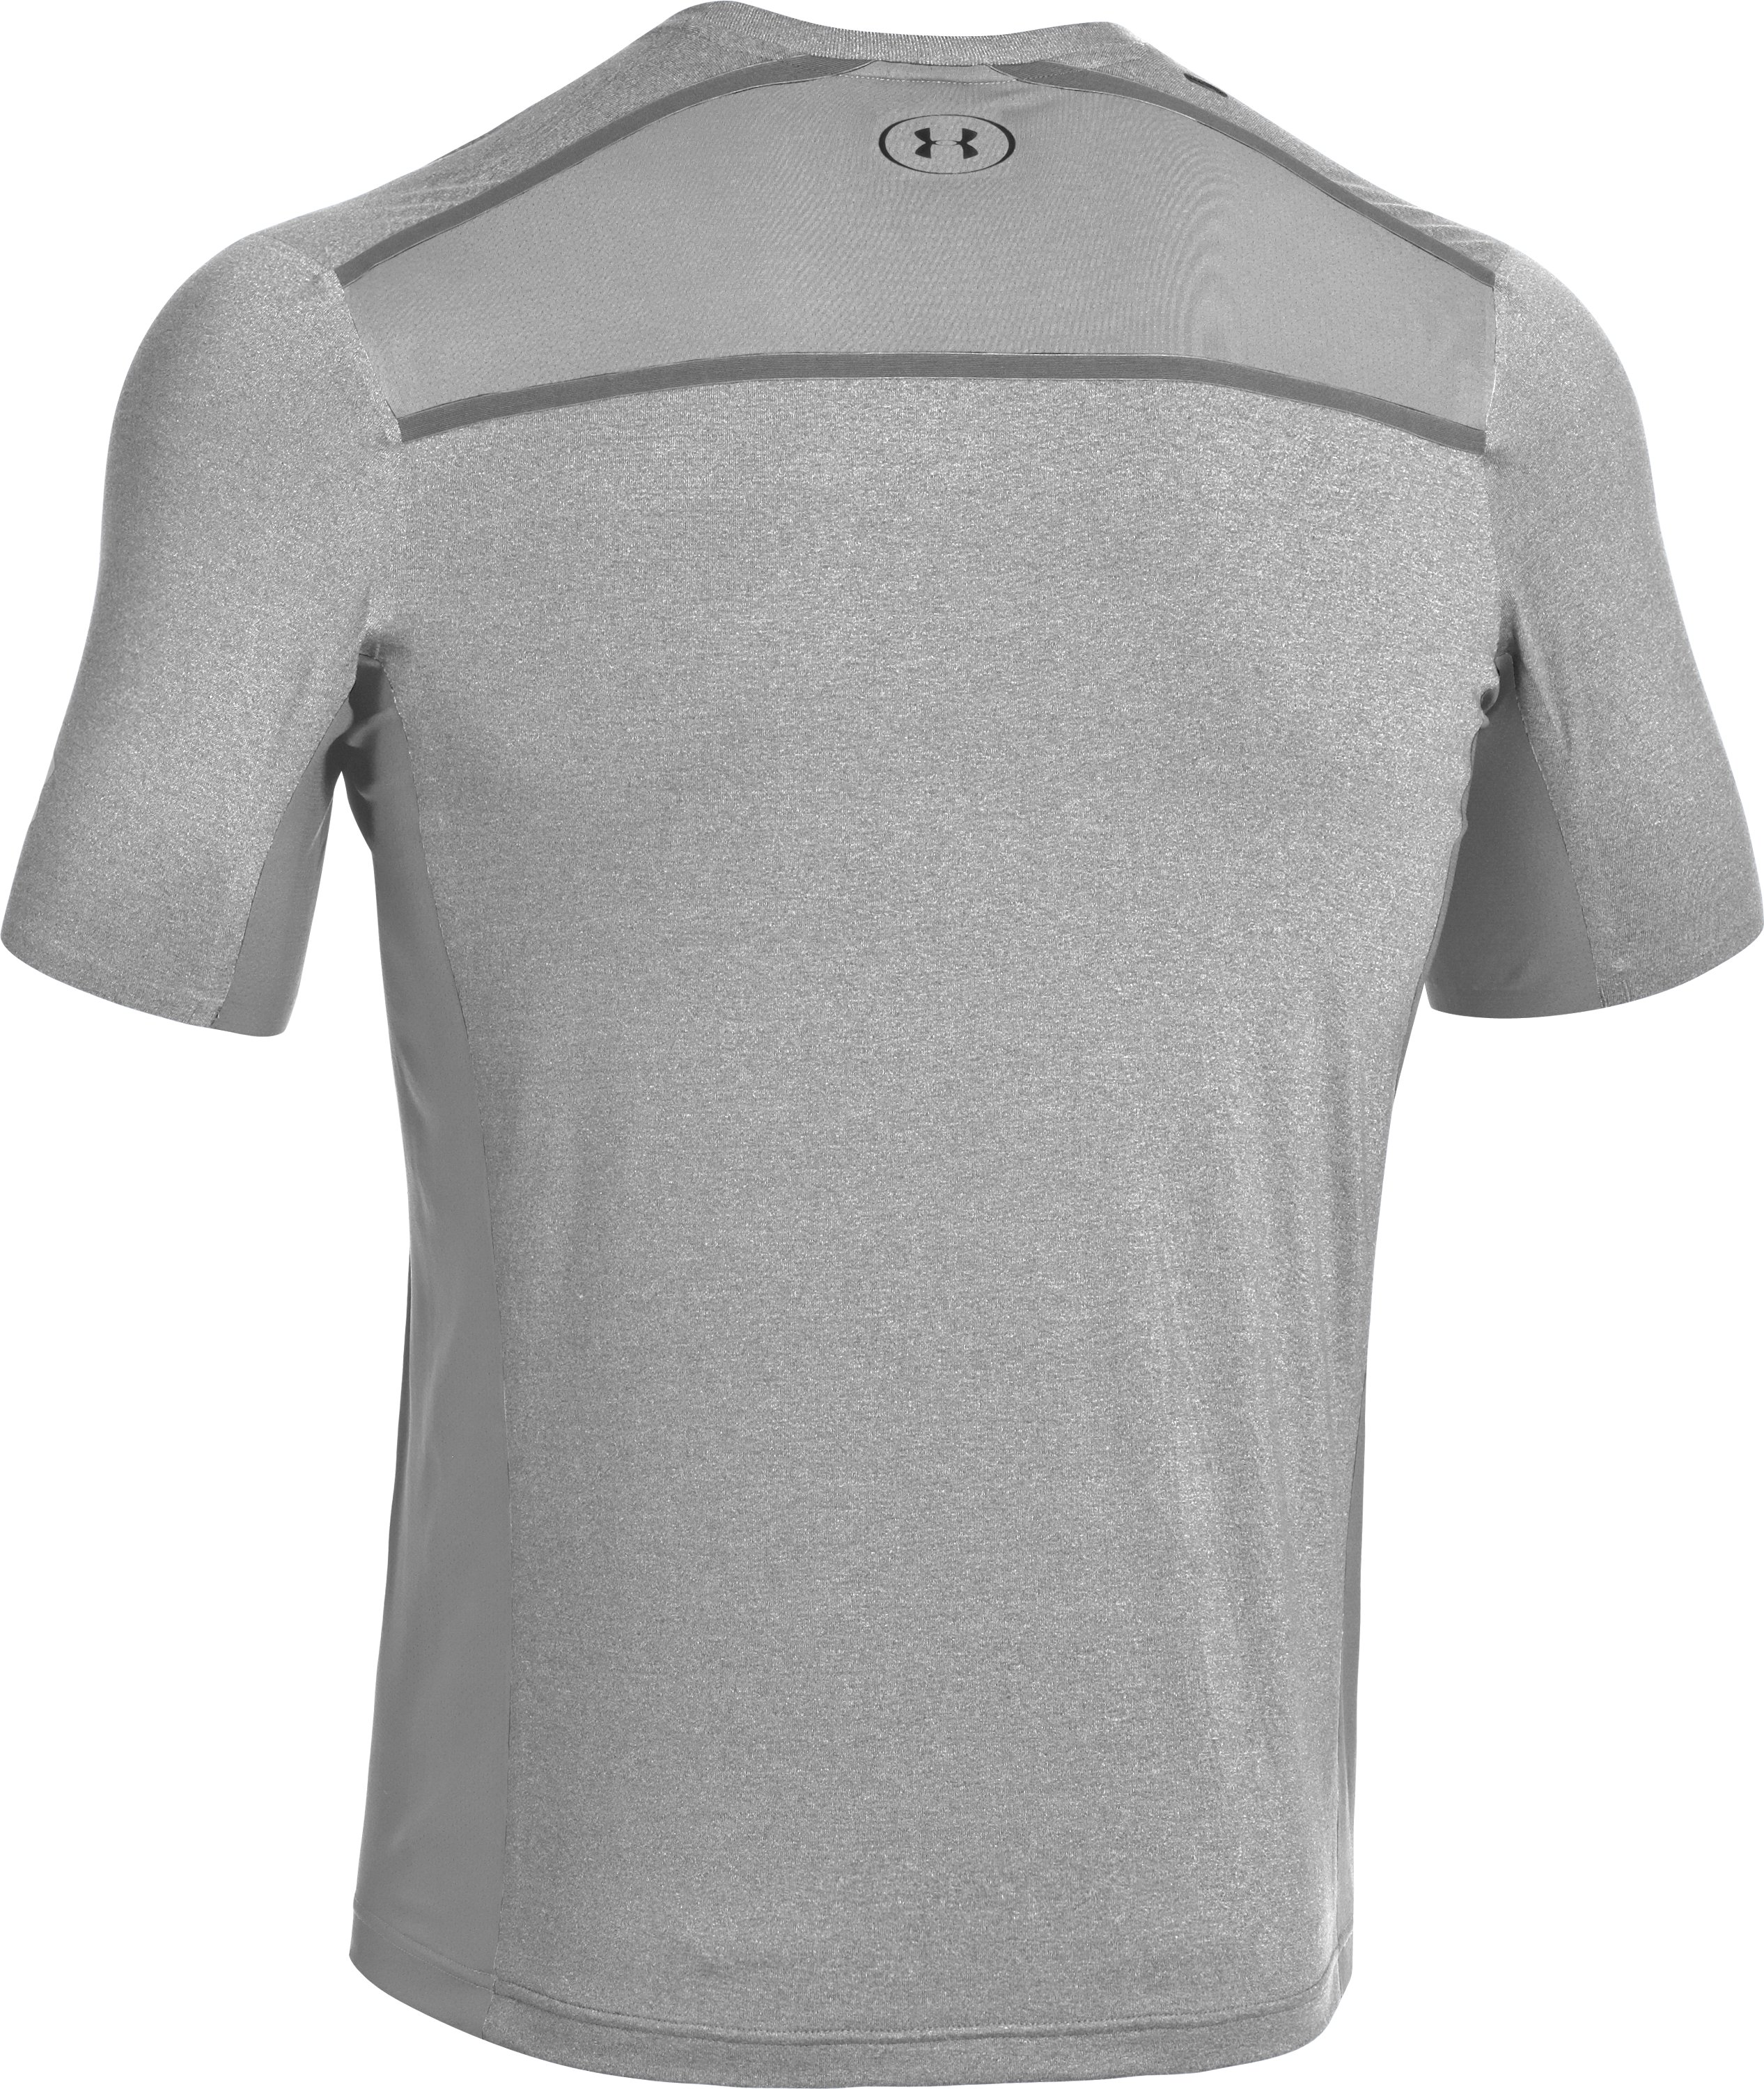 Men's UA Station Crew T-Shirt, True Gray Heather, undefined